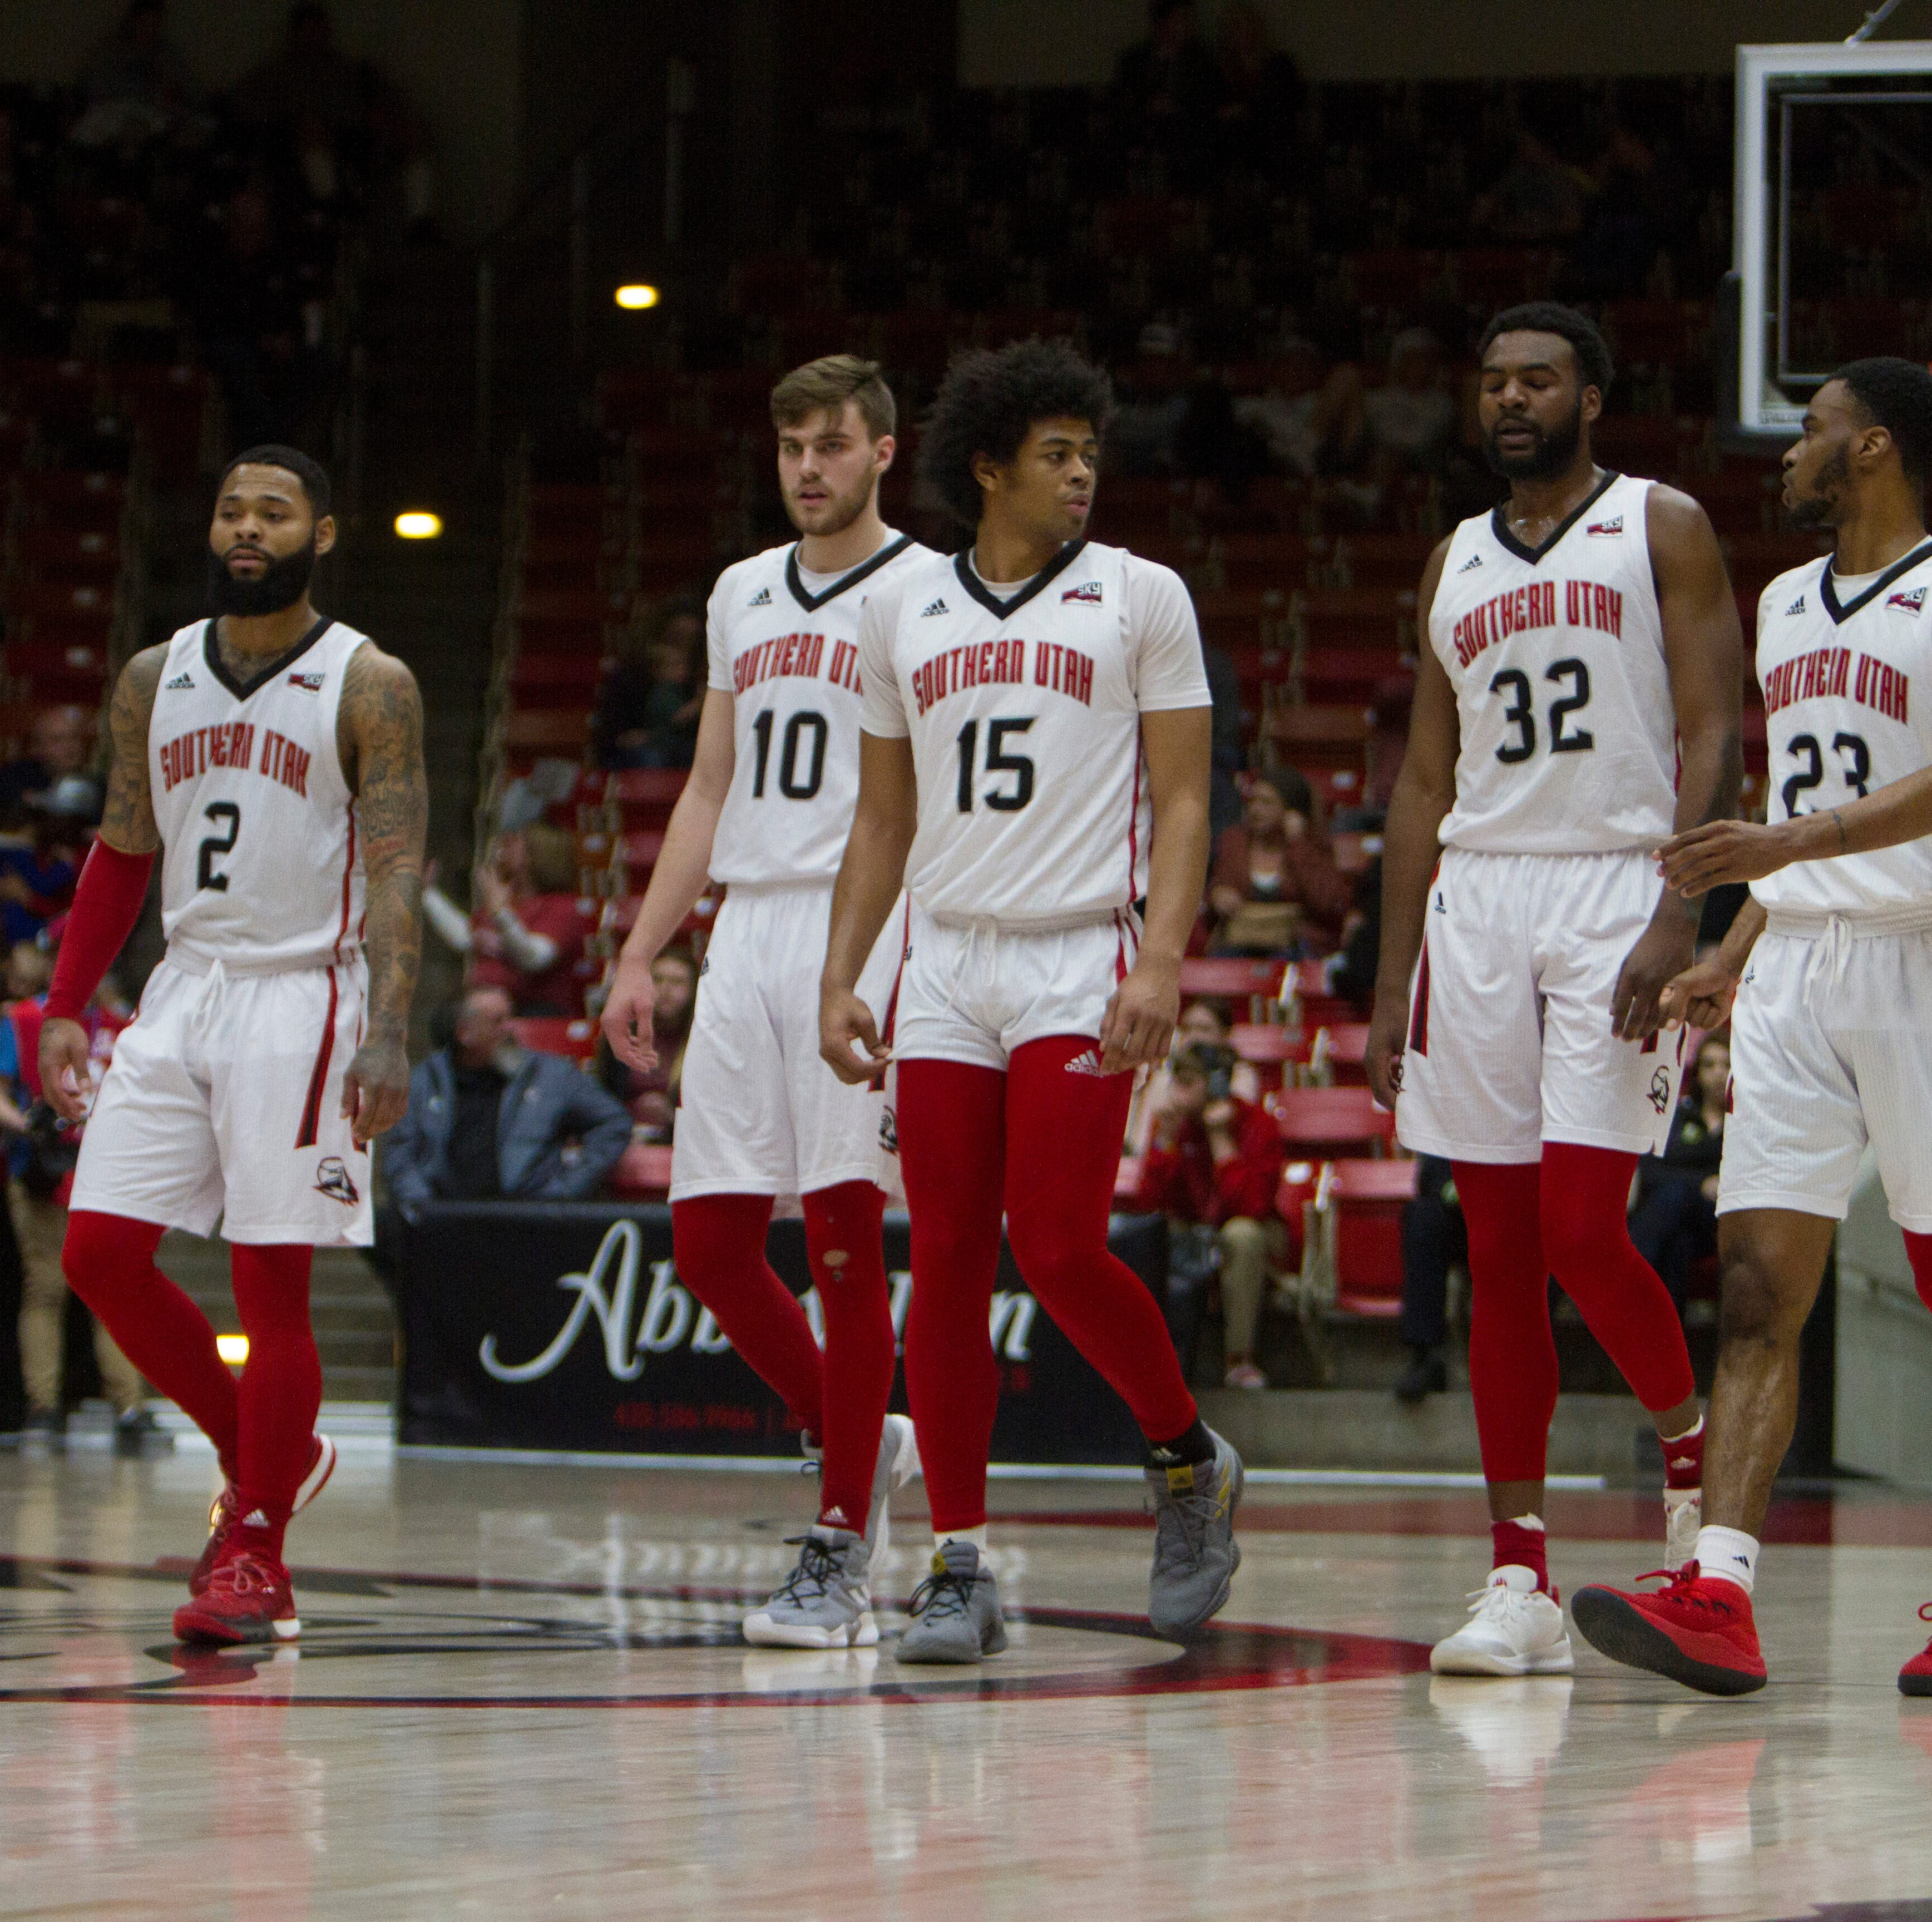 SUU beats Drake in overtime, picks up first postseason win as Division I program